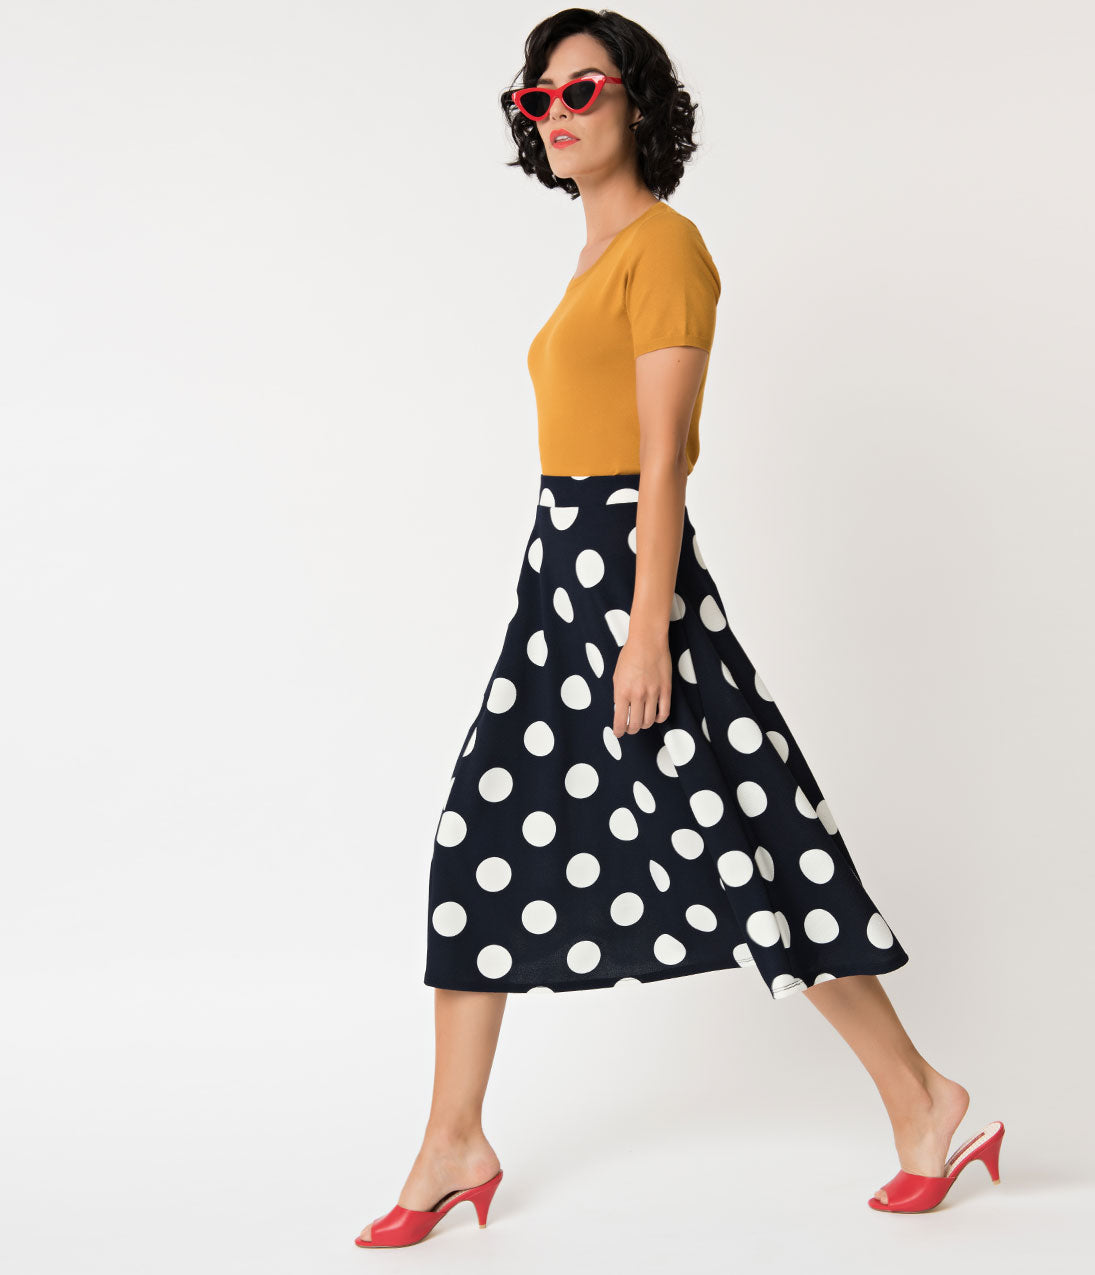 1950s Swing Skirt, Poodle Skirt, Pencil Skirts Retro Style Navy  White Polka Dot High Waist Flare Skirt $32.00 AT vintagedancer.com